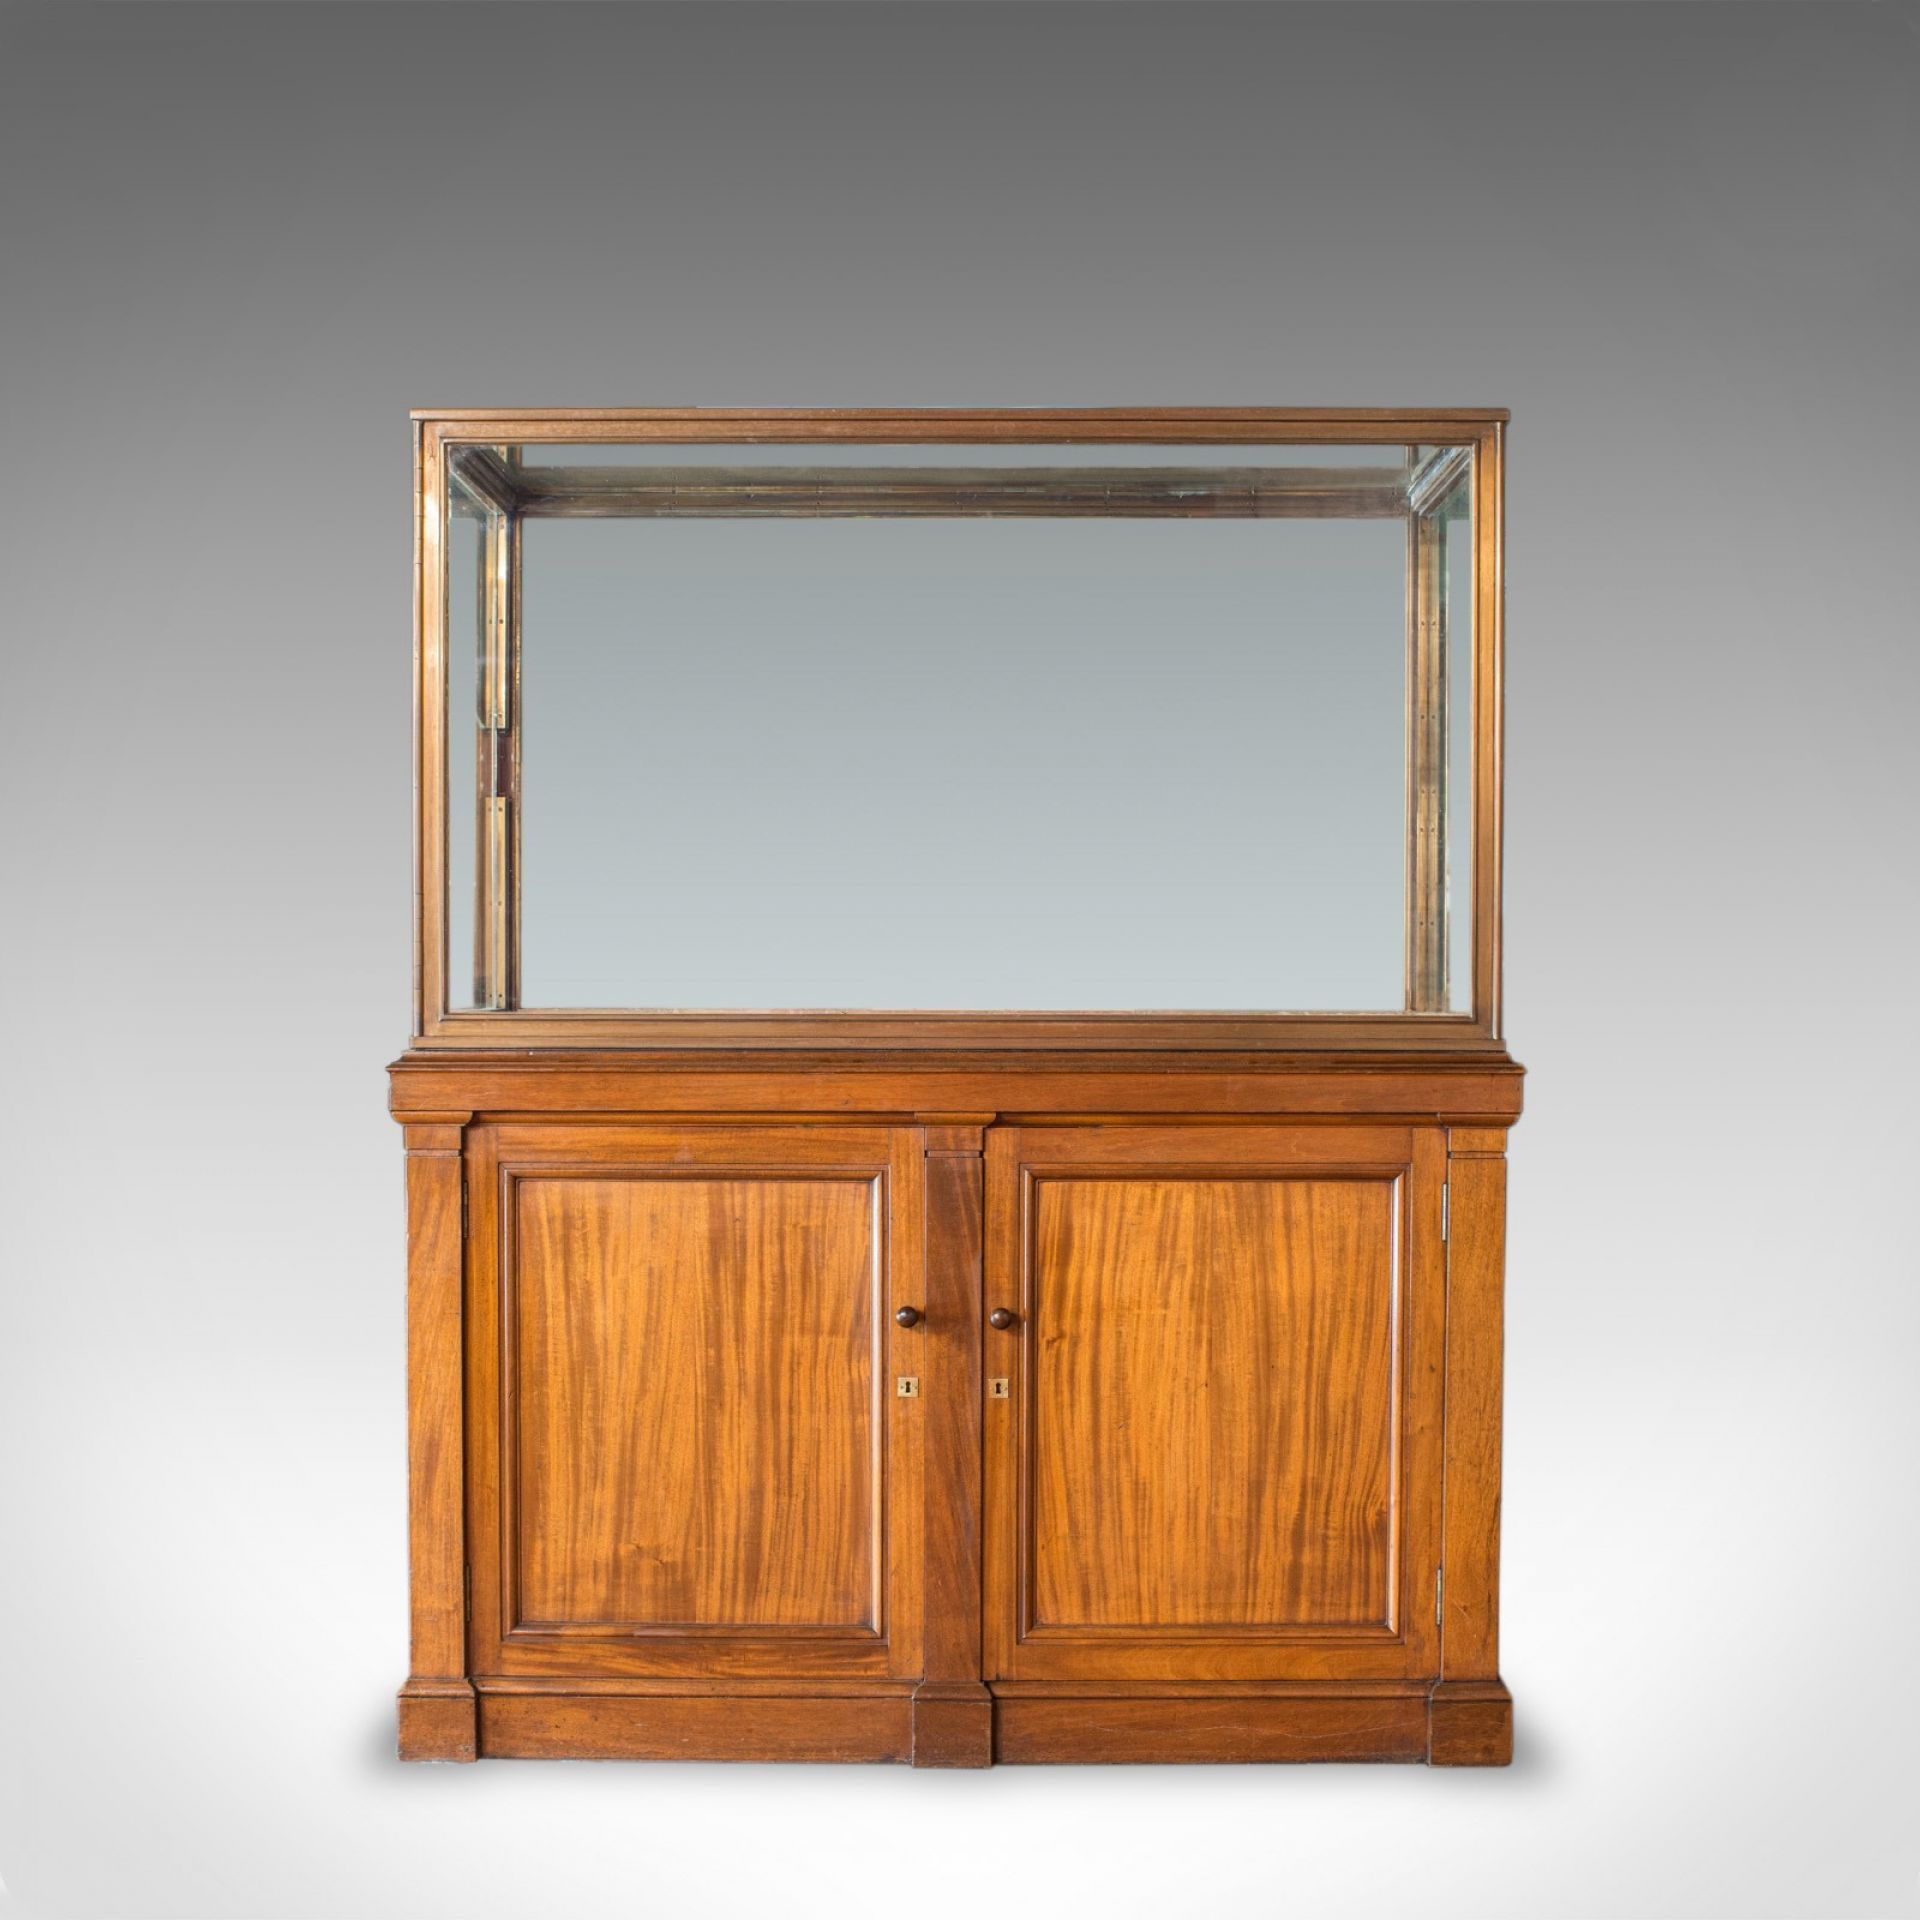 Antique Display Cabinet, English, Walnut, Bronze, Showcase, Museum, Circa 1900